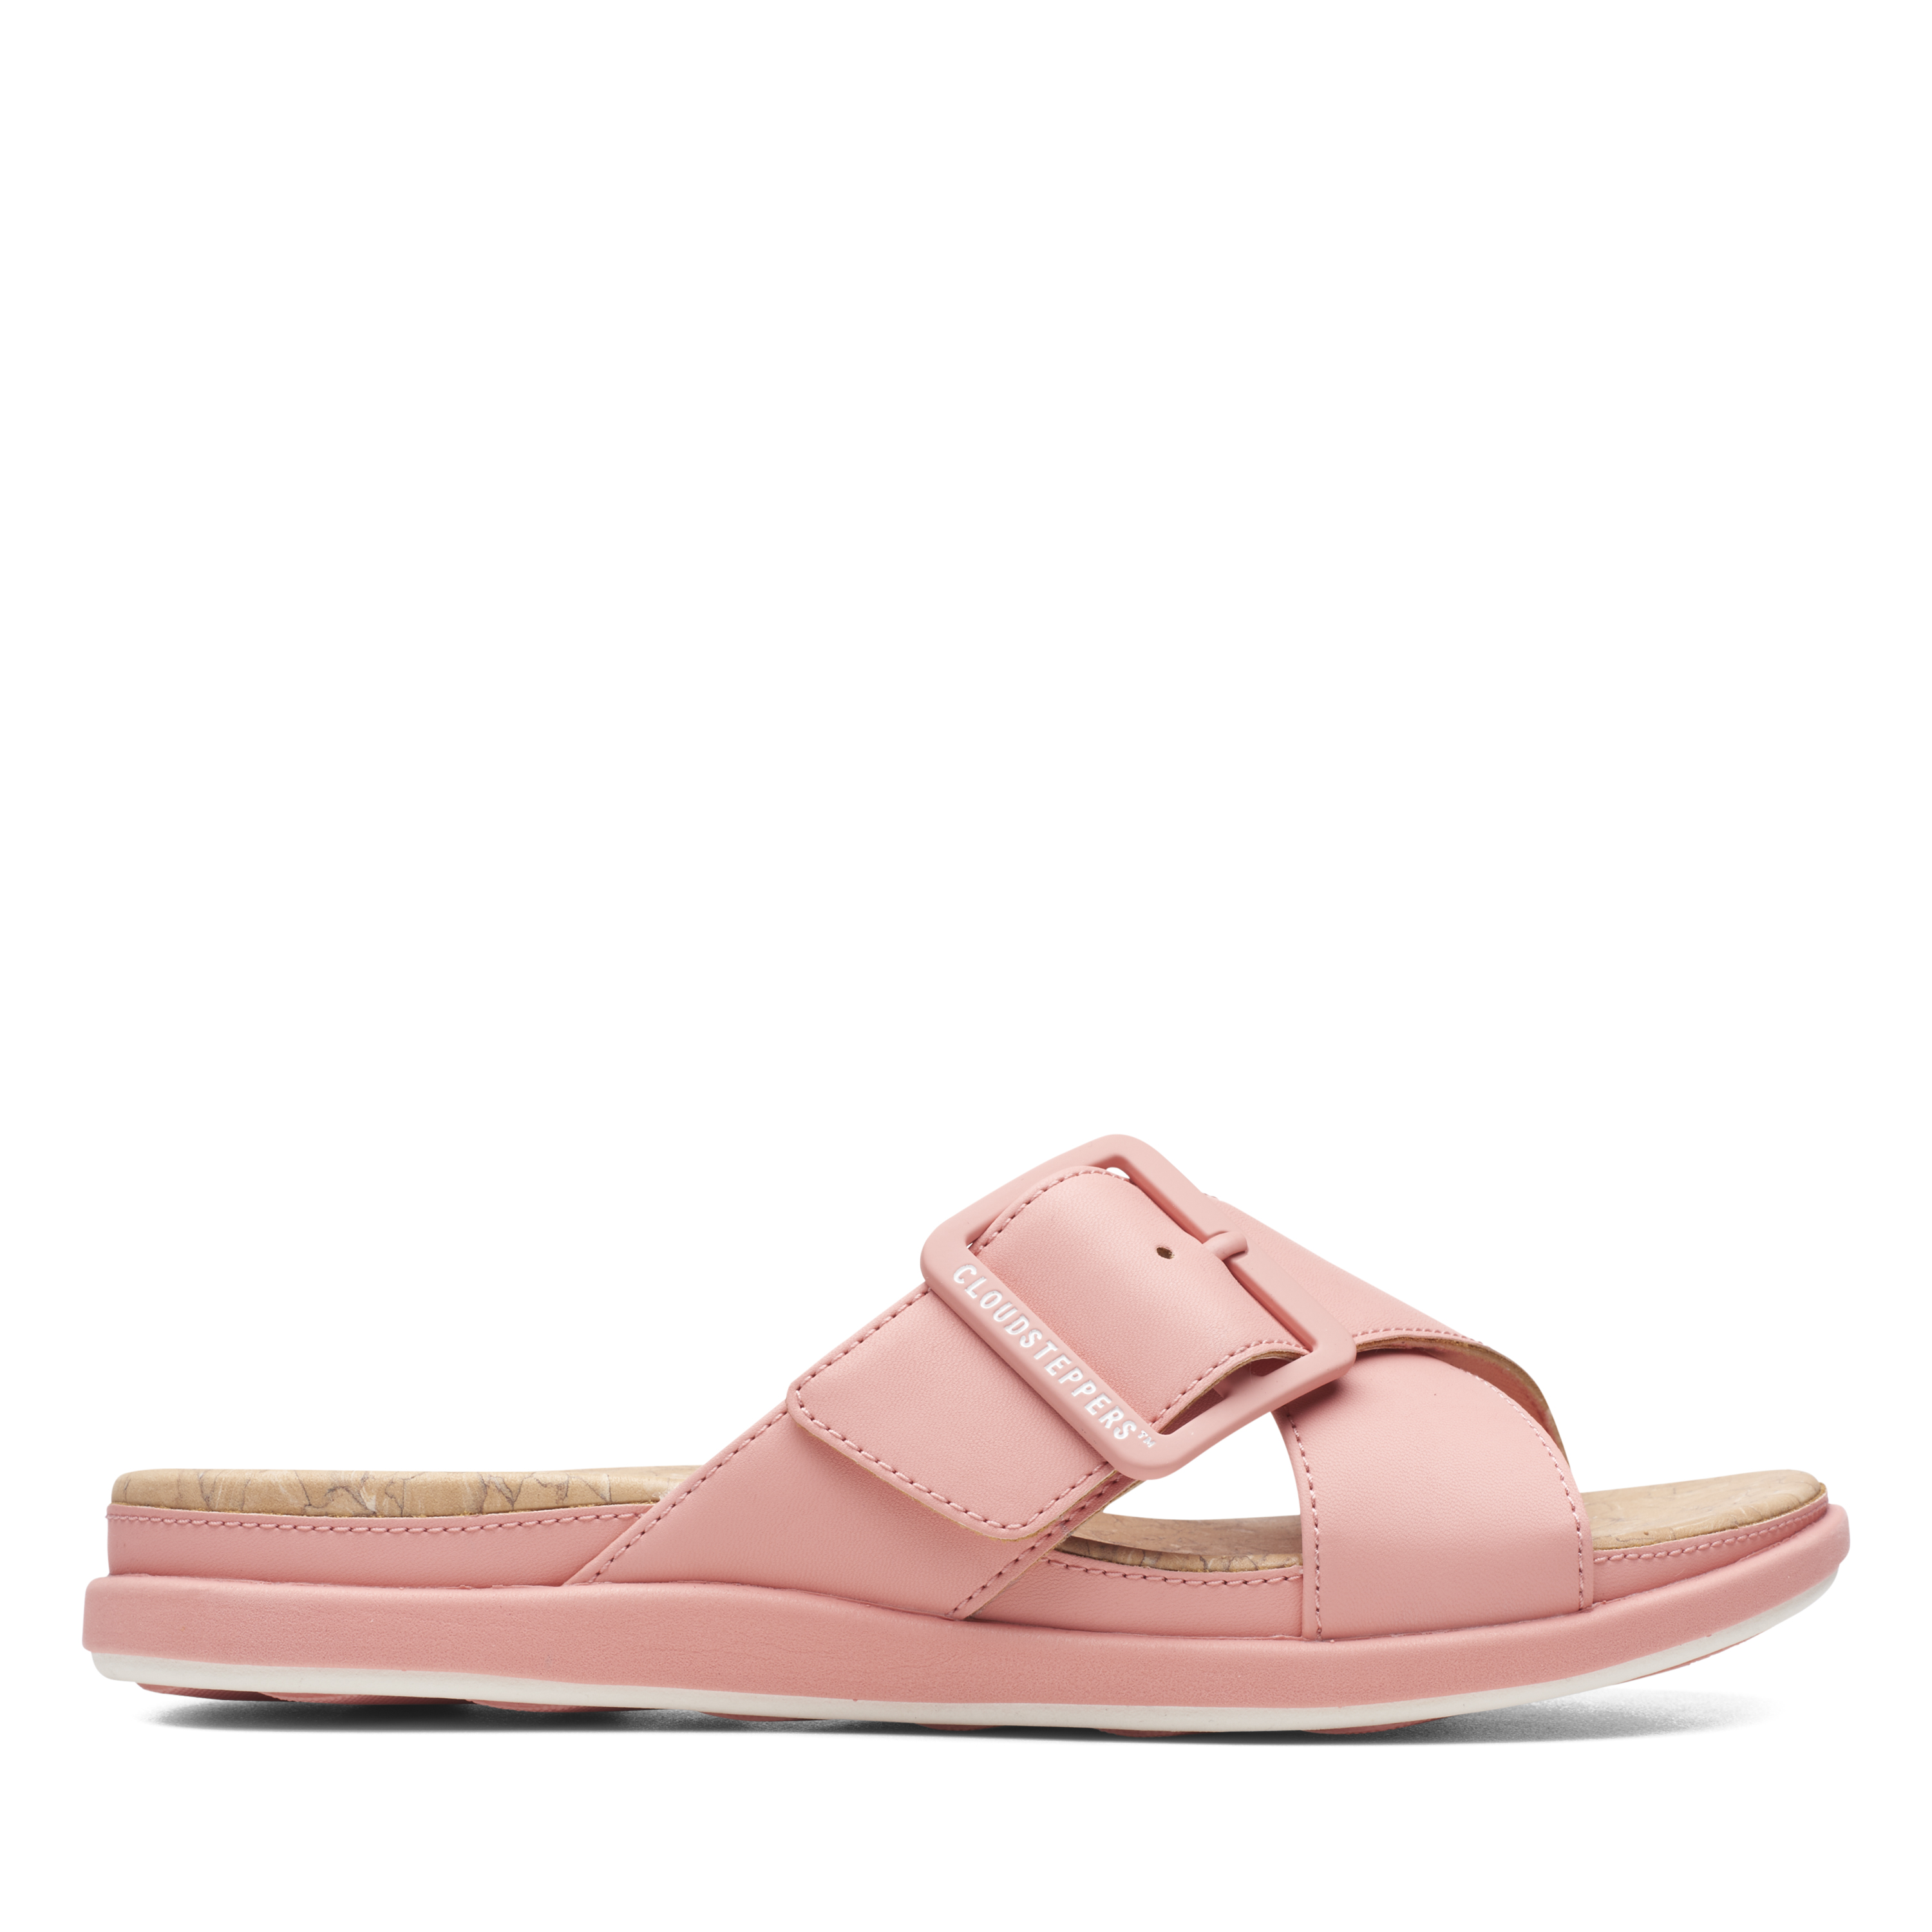 Clarks | Step Juneshell Coral Flat Sandals